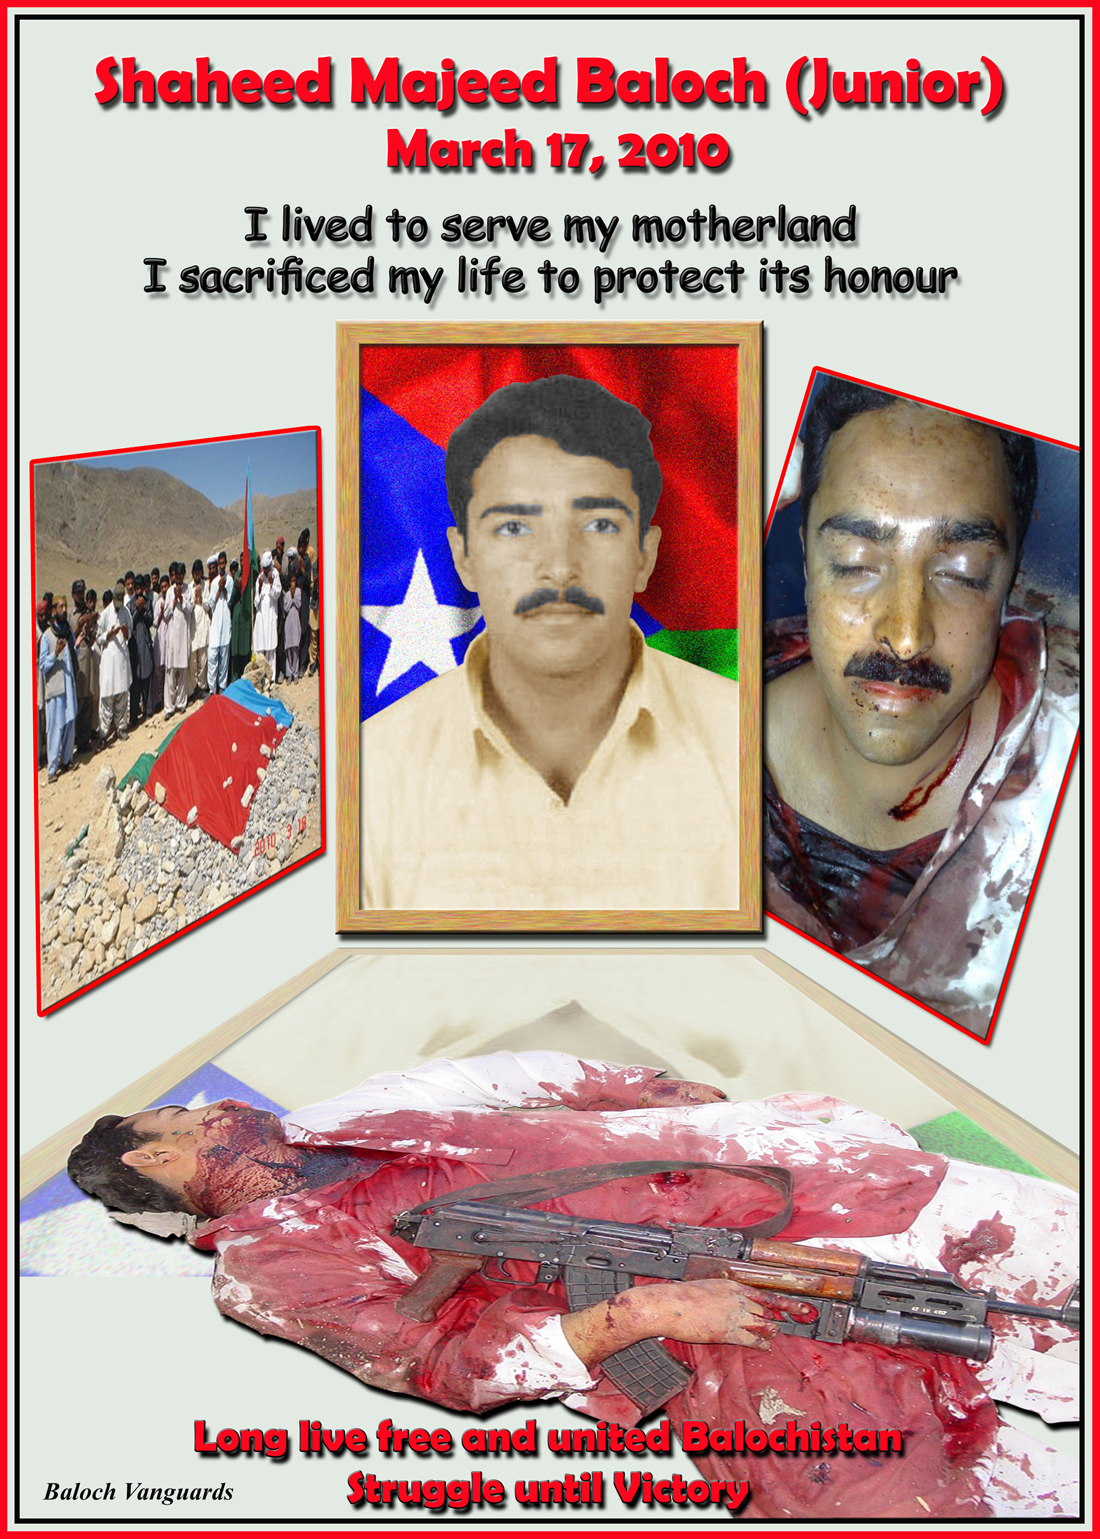 http://baluchsarmachar.files.wordpress.com/2012/03/1shaheed-majeed-junior.jpg